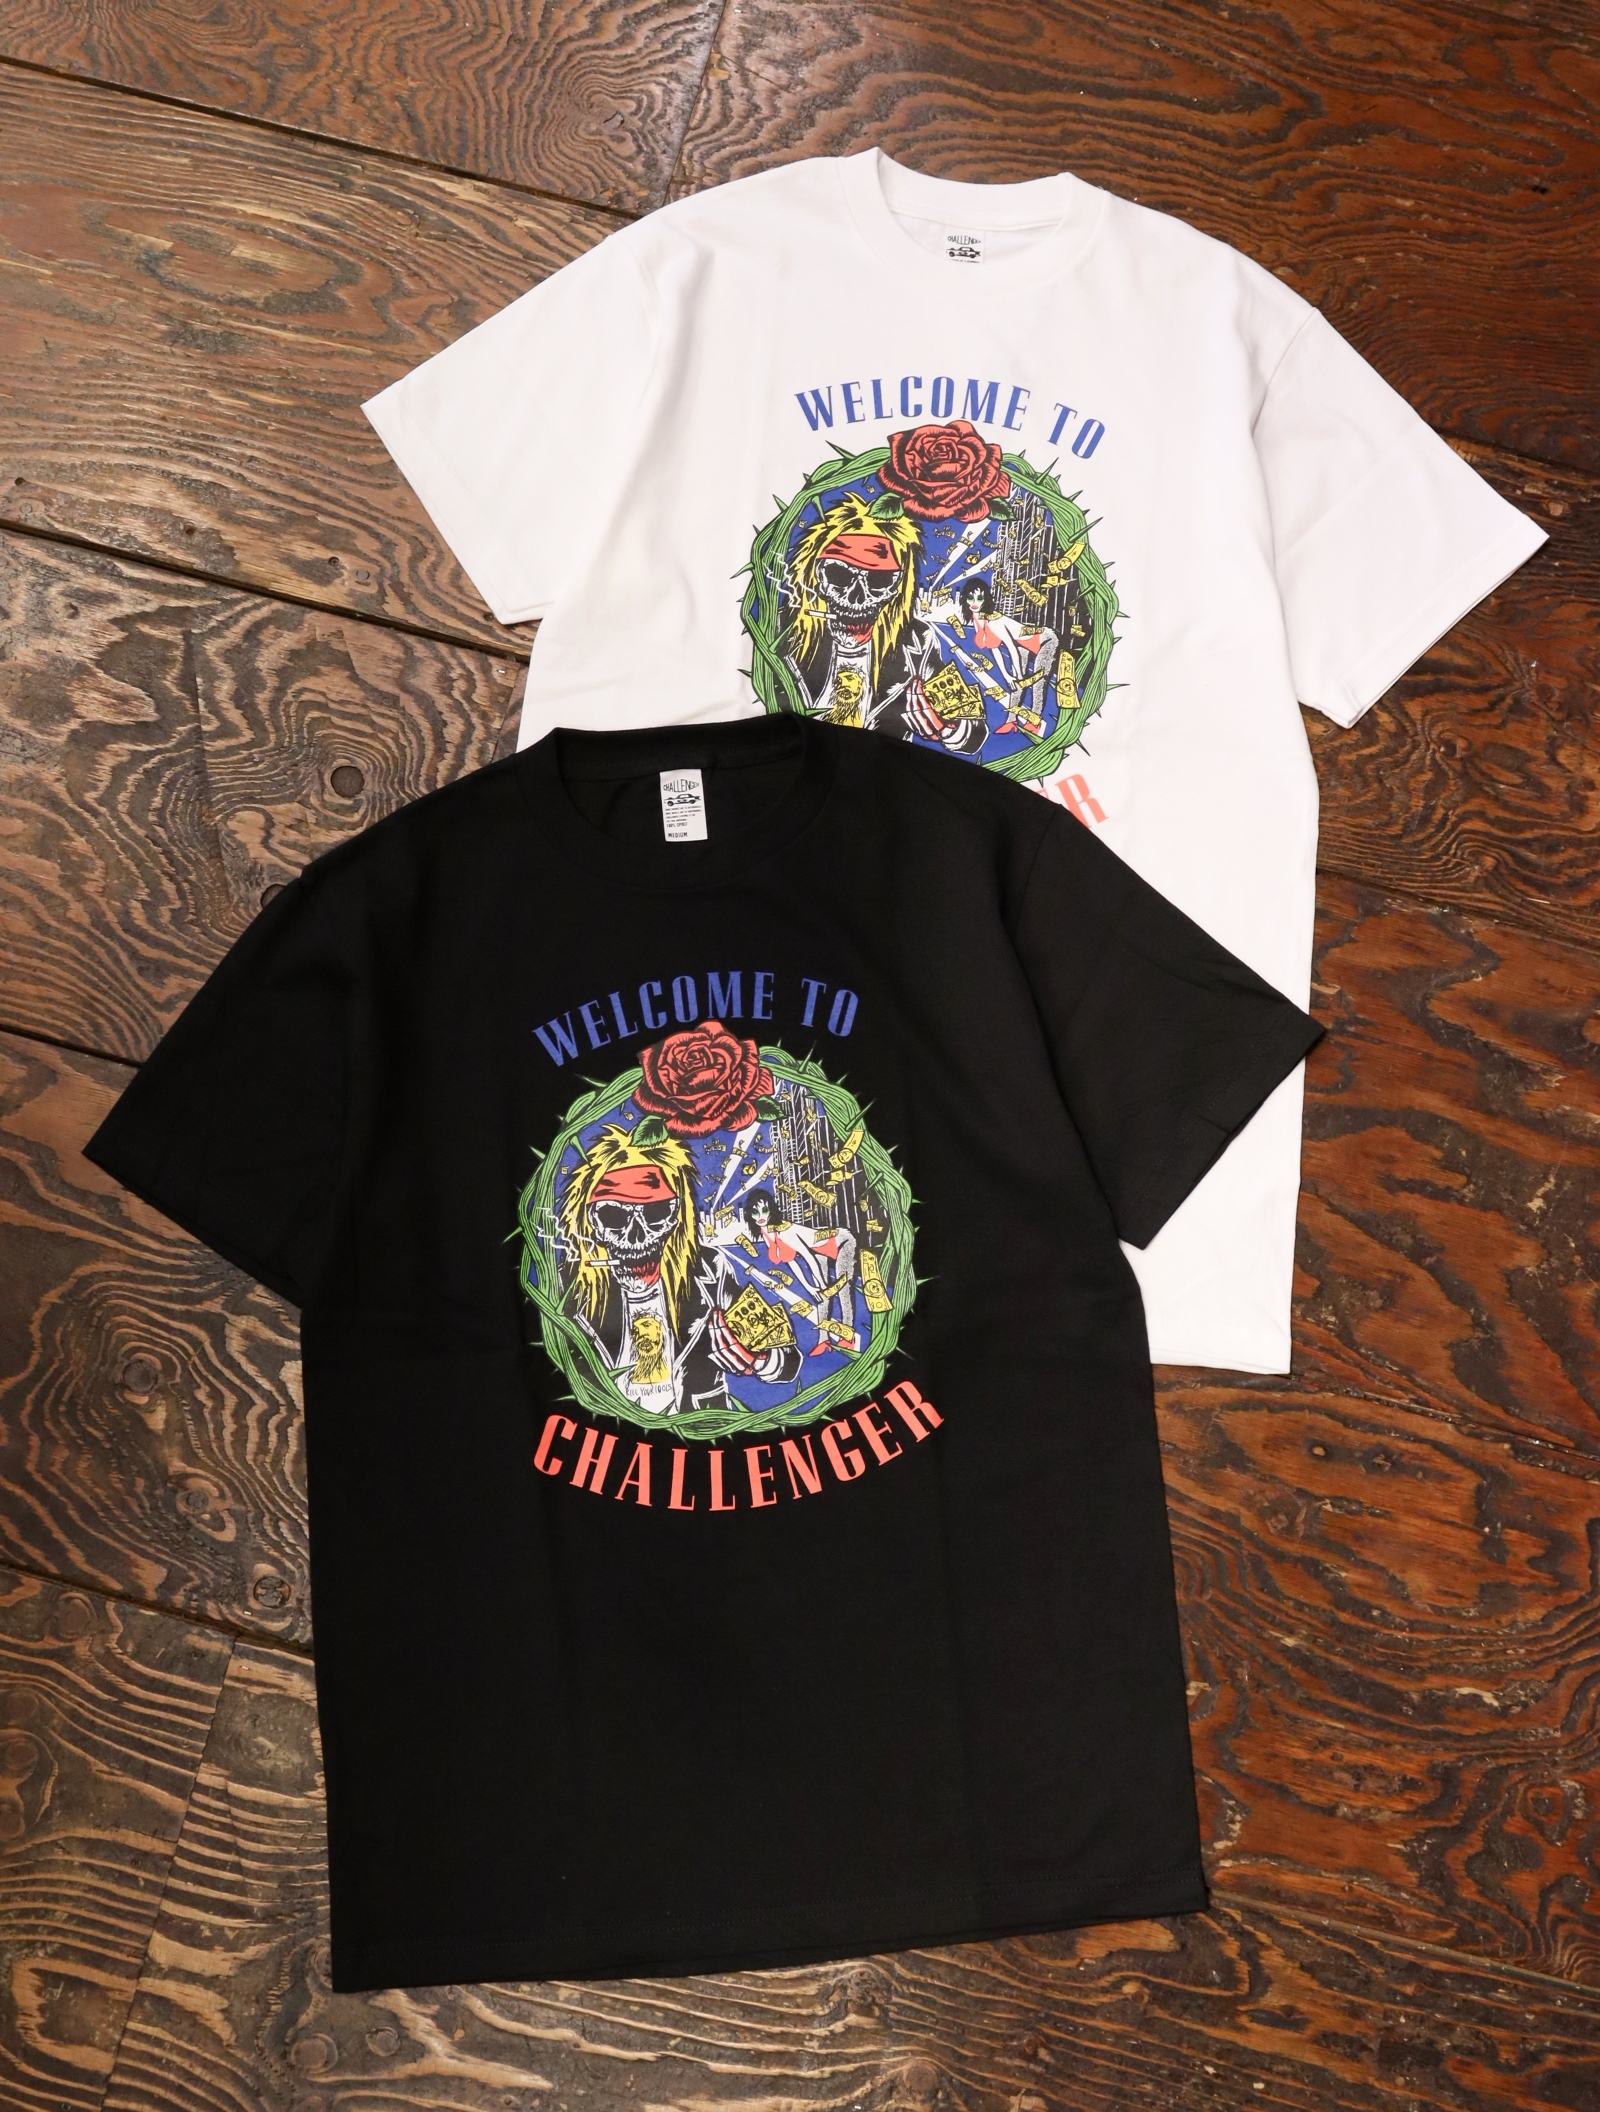 CHALLENGER  「WELLCOME TO CHALLENGER TEE」  プリントティーシャツ